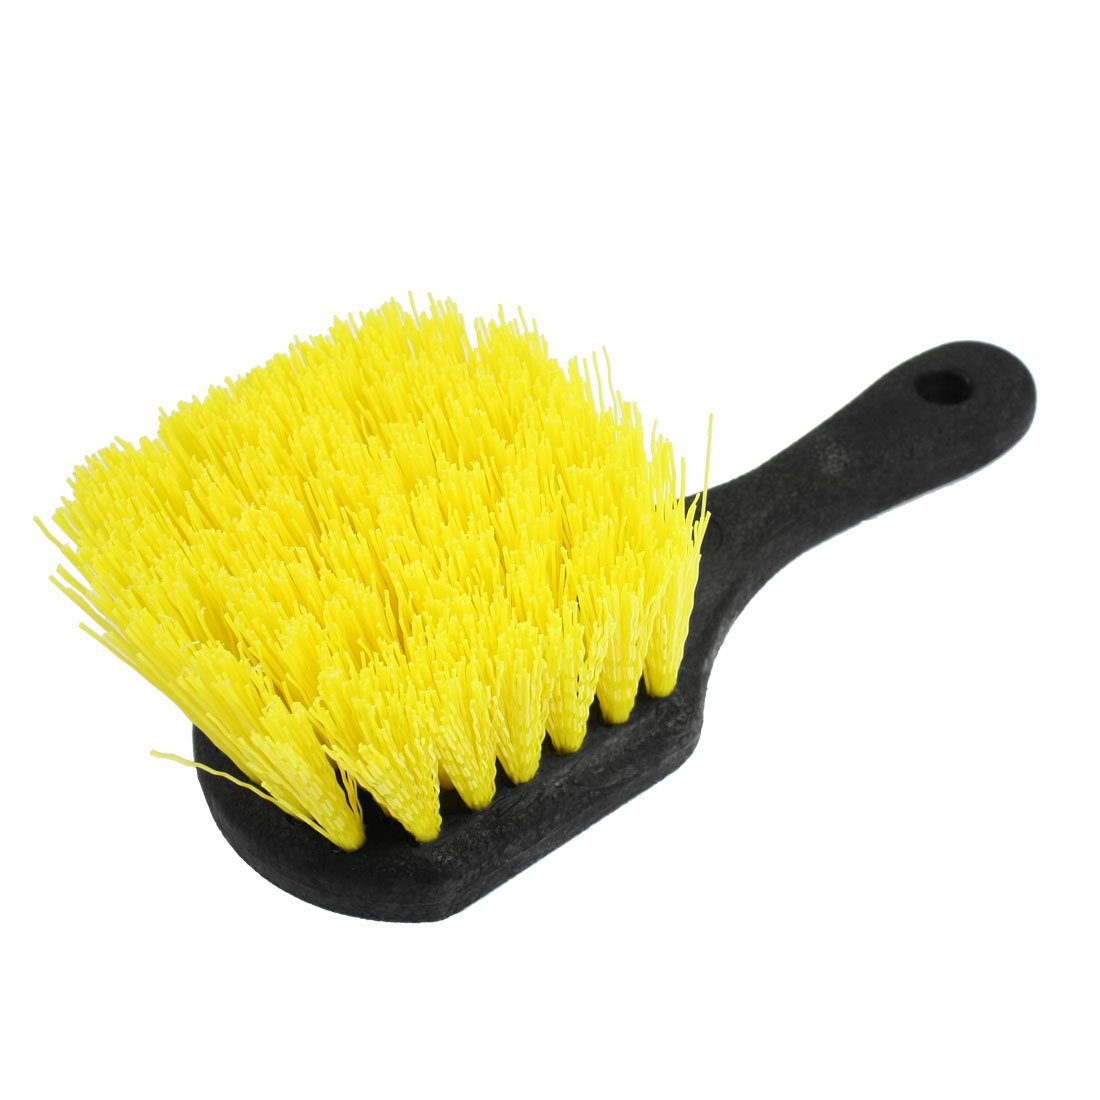 Yellow Black Antislip Handle Tire Wheel Detail Cleaning Brush for Car Auto